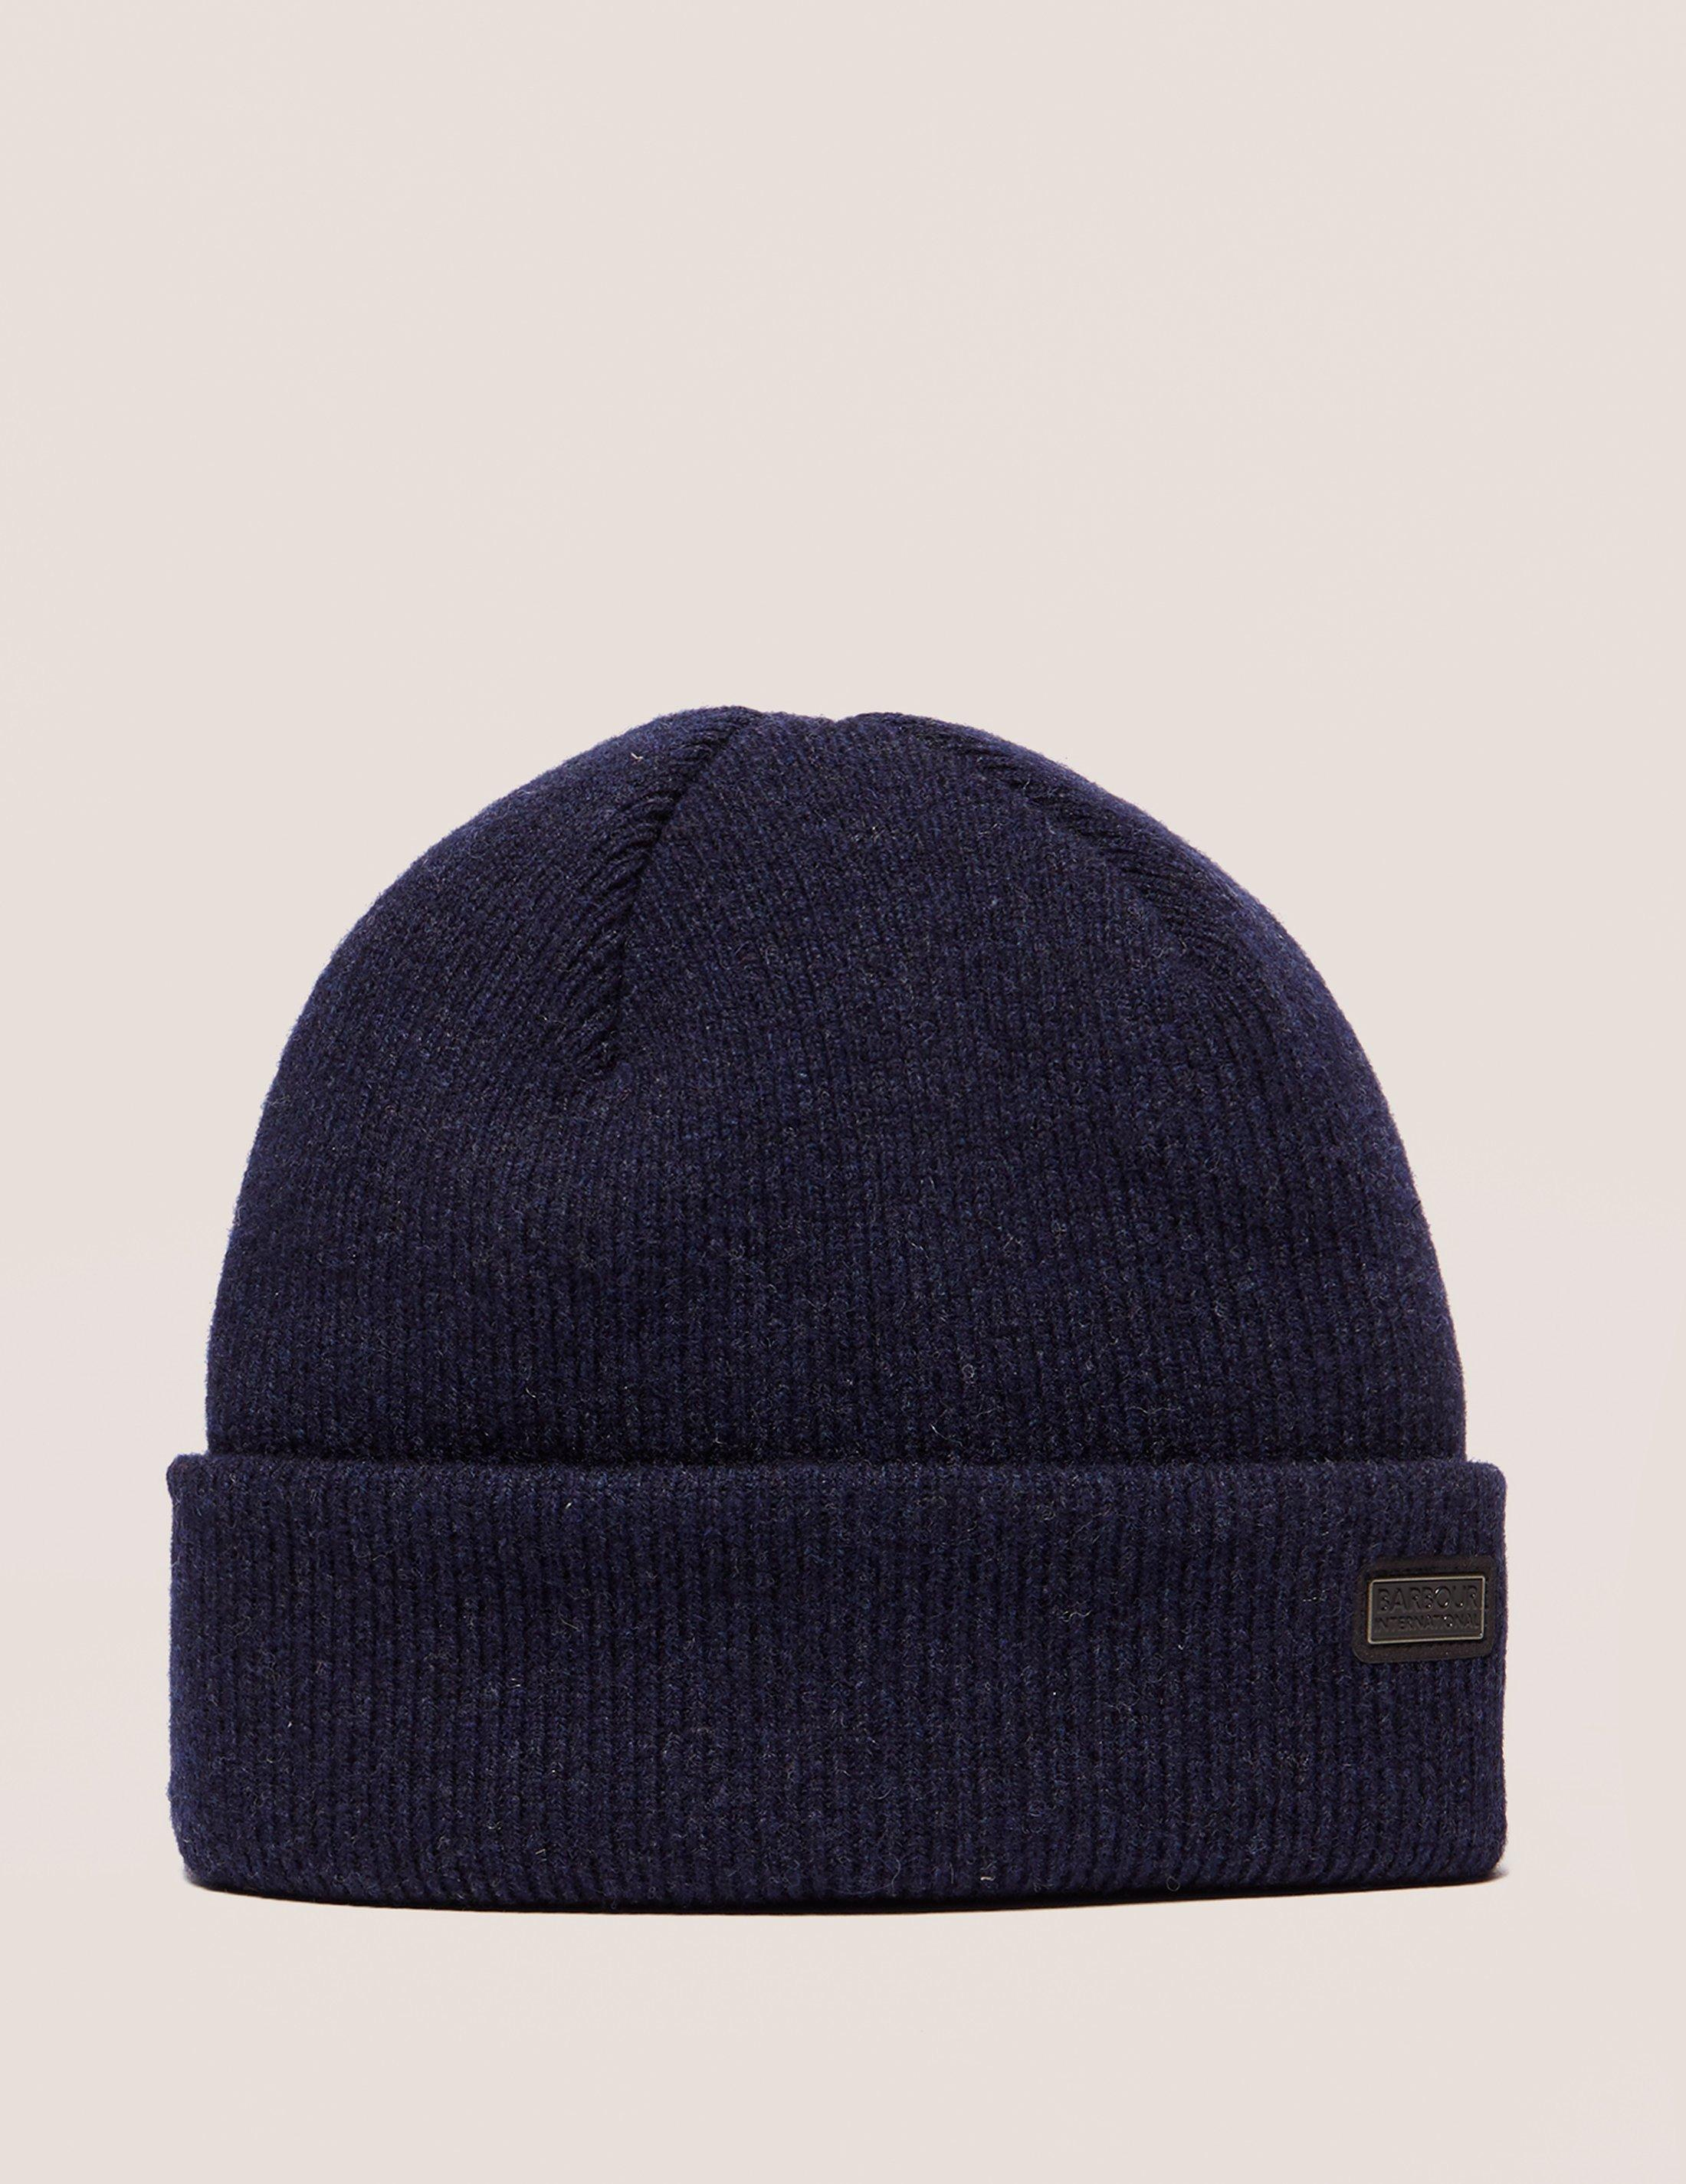 efb010950f2814 ... Barbour Mens International Watch Knitted Beanie Navy Blue in Blue ...  a4f90aeb2a3a; Amazing Winter ...